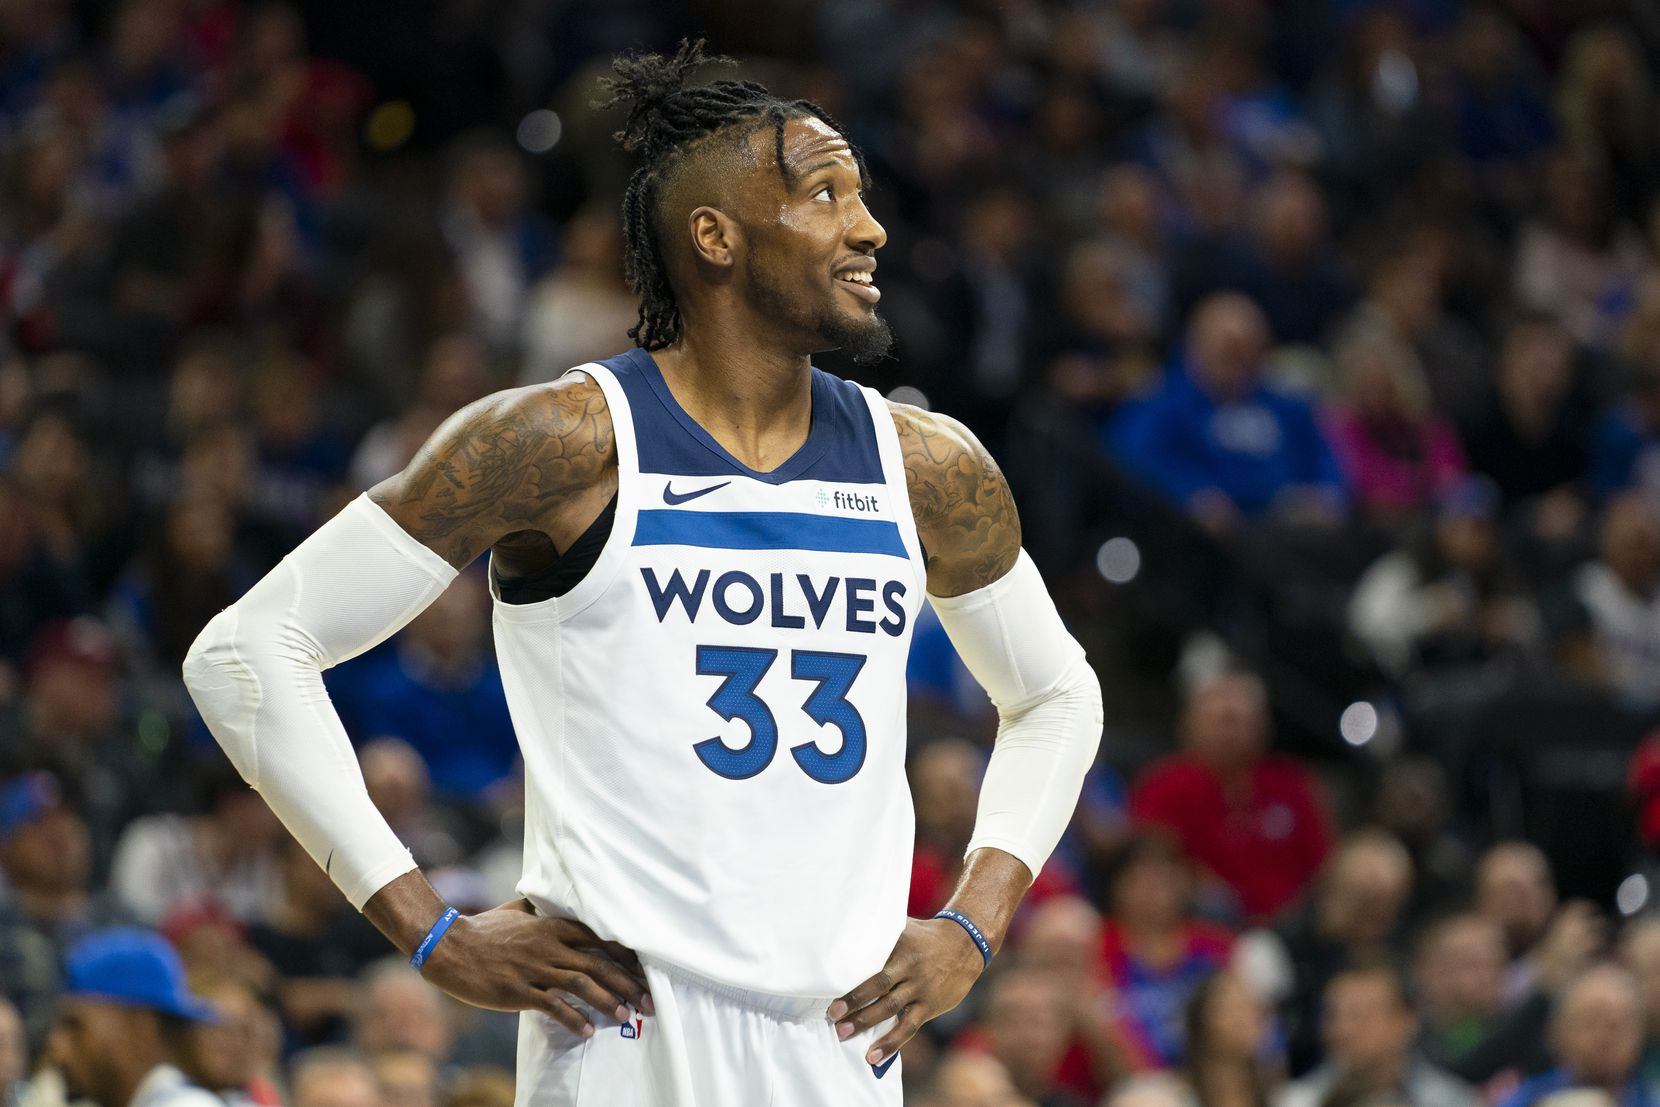 PHILADELPHIA, PA - OCTOBER 30: Robert Covington #33 of the Minnesota Timberwolves reacts against the Philadelphia 76ers at the Wells Fargo Center on October 30, 2019 in Philadelphia, Pennsylvania. NOTE TO USER: User expressly acknowledges and agrees that, by downloading and or using this photograph, User is consenting to the terms and conditions of the Getty Images License Agreement.